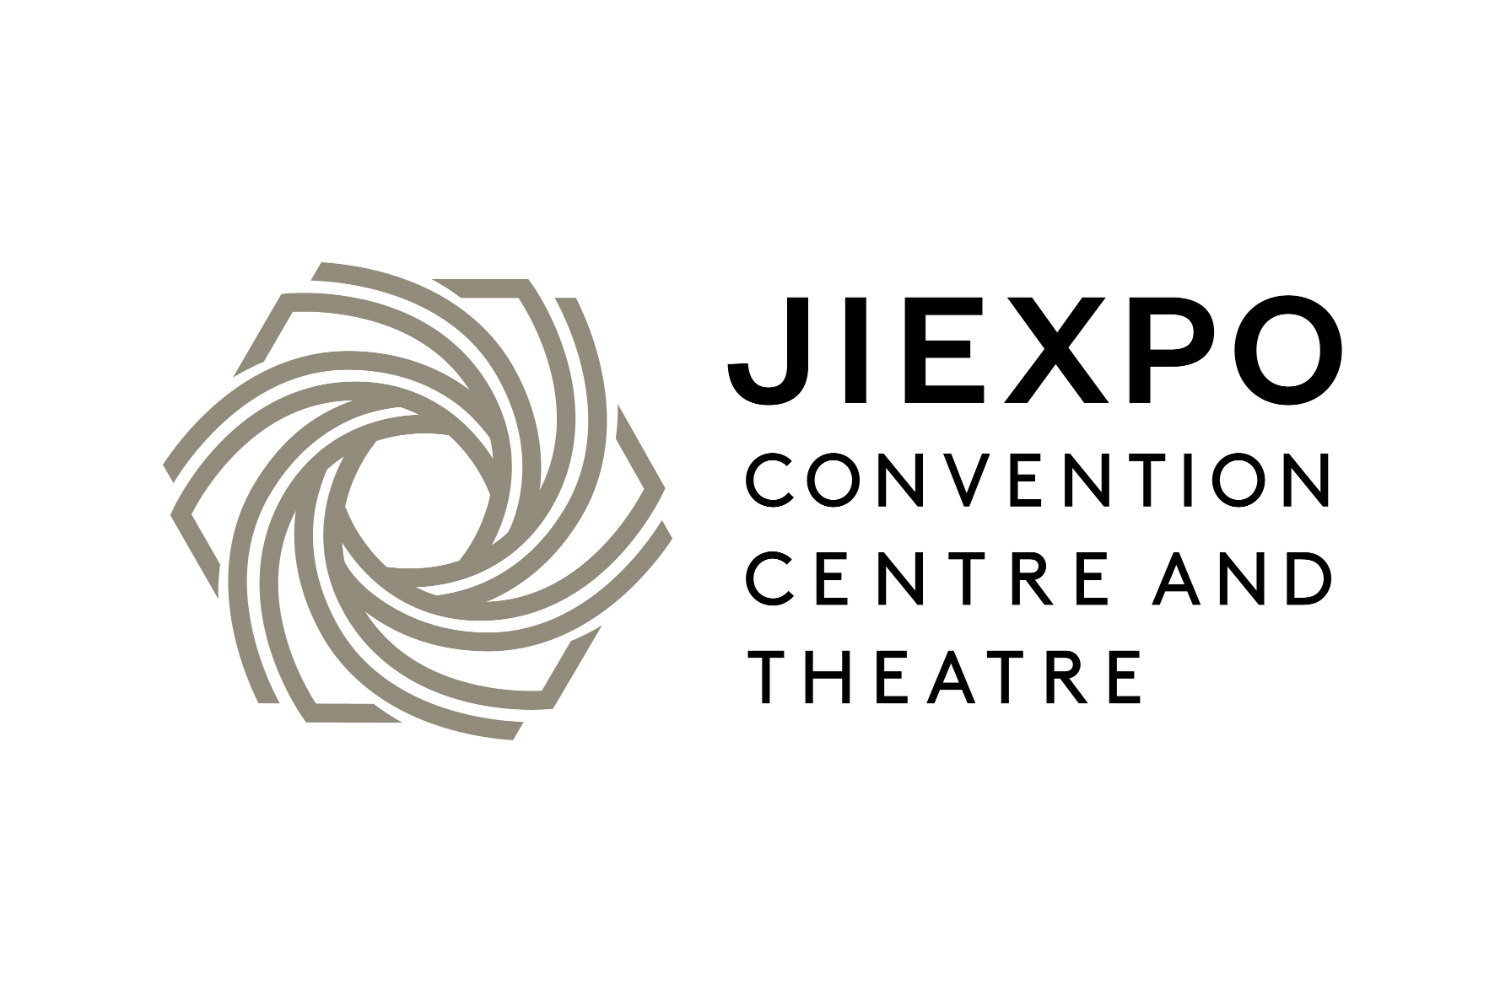 The new Convention Centre and Theatre at Jakarta International Expo (JIExpo) complex will be one of the largest and most forward thinking convention and entertainment centers in Indonesia. WSDG was called to to create an acoustic environment conducive to world-class acoustical standards throughout the complex. Logo